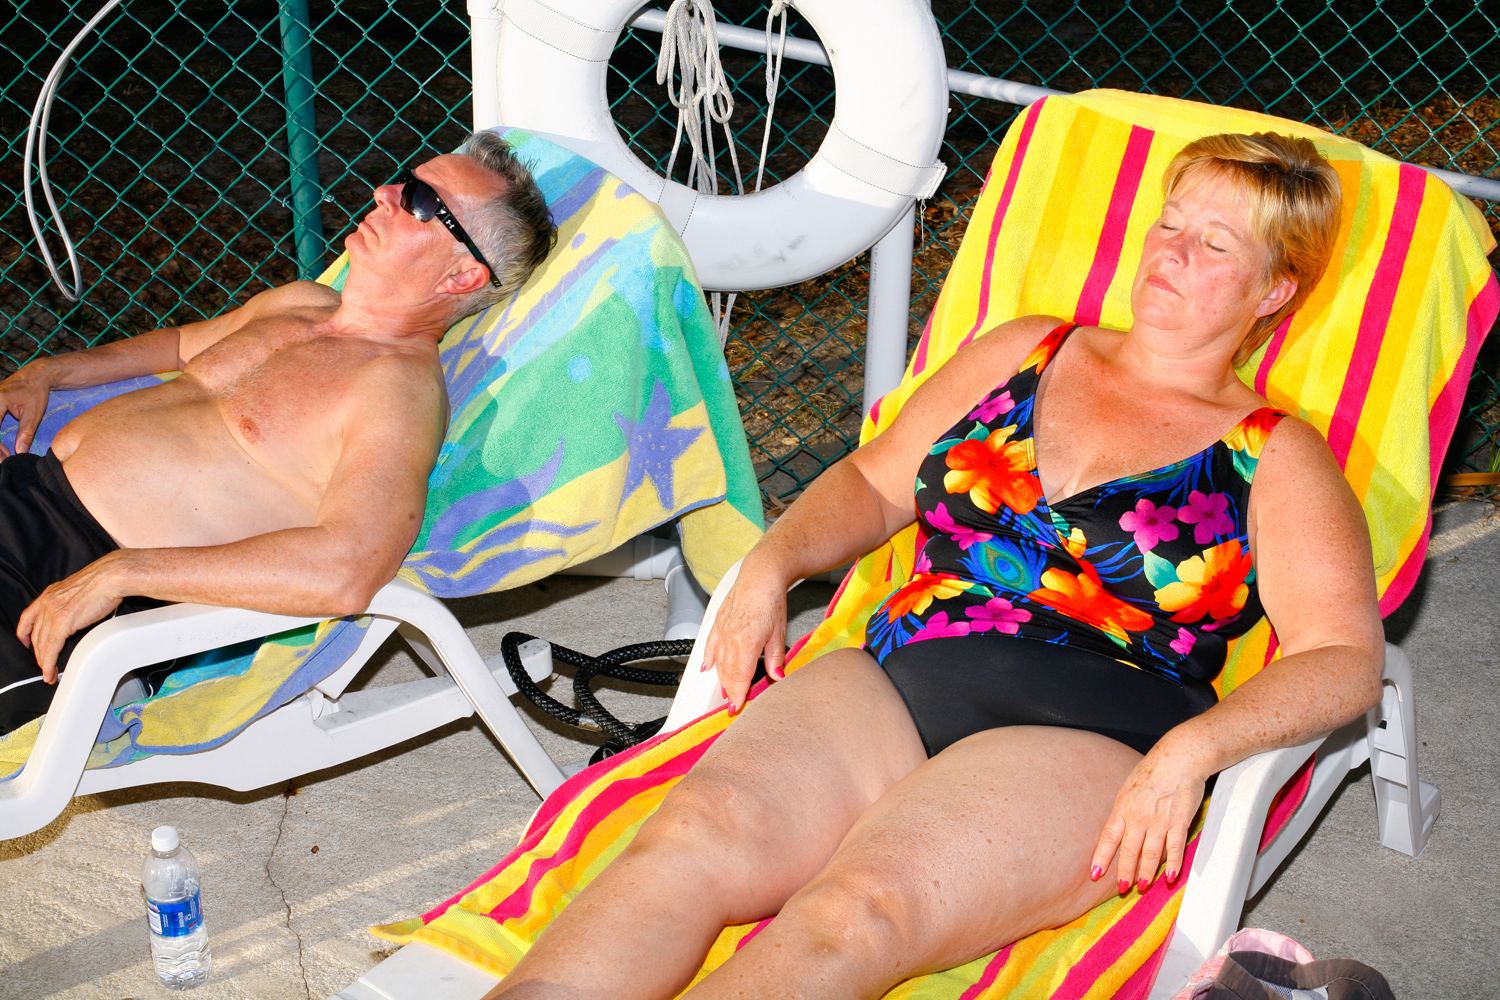 A couple relaxes at The Villages, Fla., January 29, 2012.